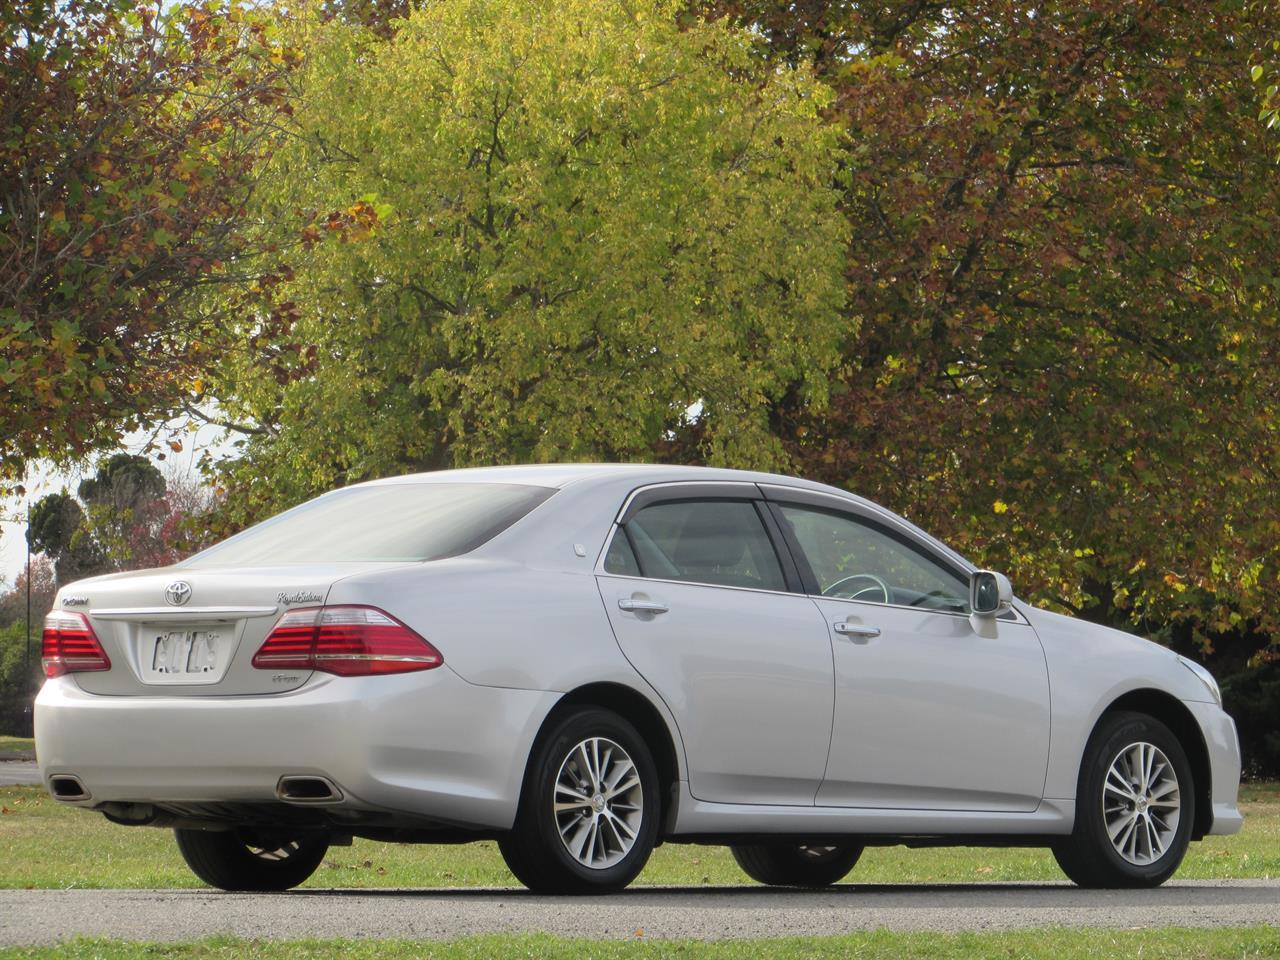 image-5, 2011 Toyota Crown at Christchurch